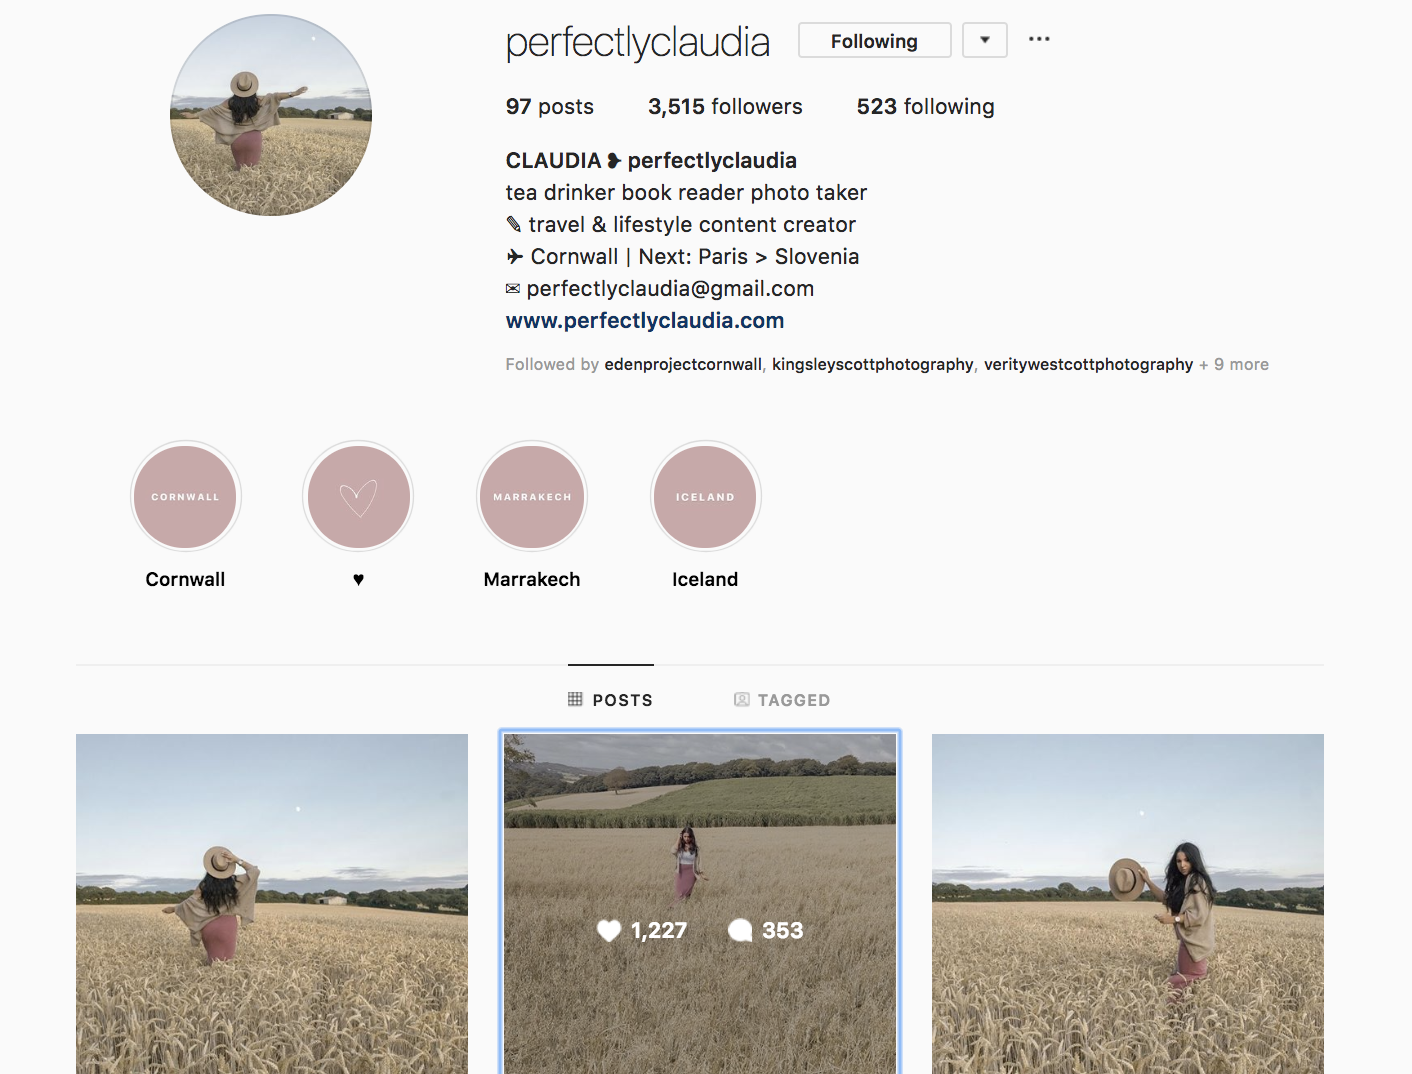 Claudia ( PerfectlyClaudia ) has some INSANE engagement on her profile - I have no idea how she does it! With only 3,500 followers, she has a whopping 35% like ratio, and on average gets over 200 comments per post too. Her following may be small, but it is super engaged and incredibly valuable to a brand!